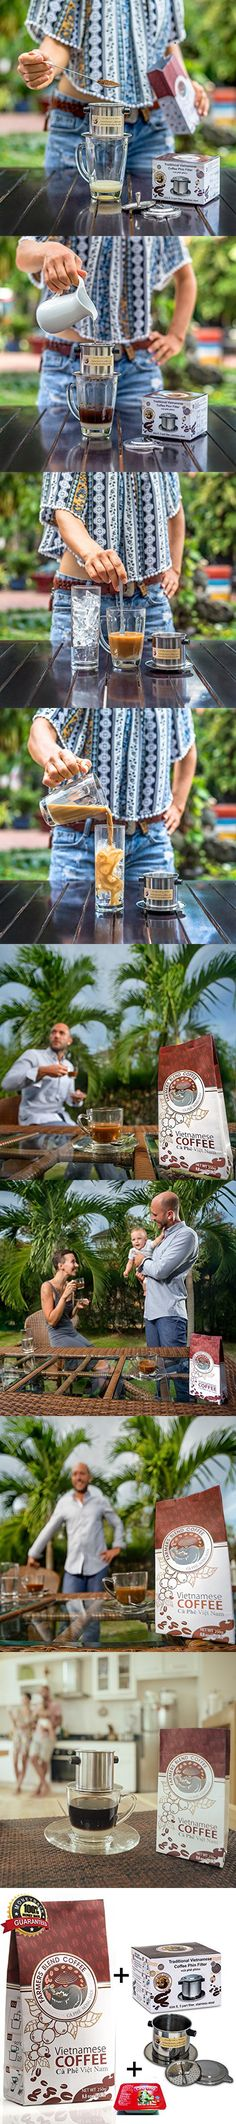 Gourmet Coffee Kit by Farmers Blend Vietnamese Coffee, our all in one Gift Set for a Unique Premium Coffee Experience